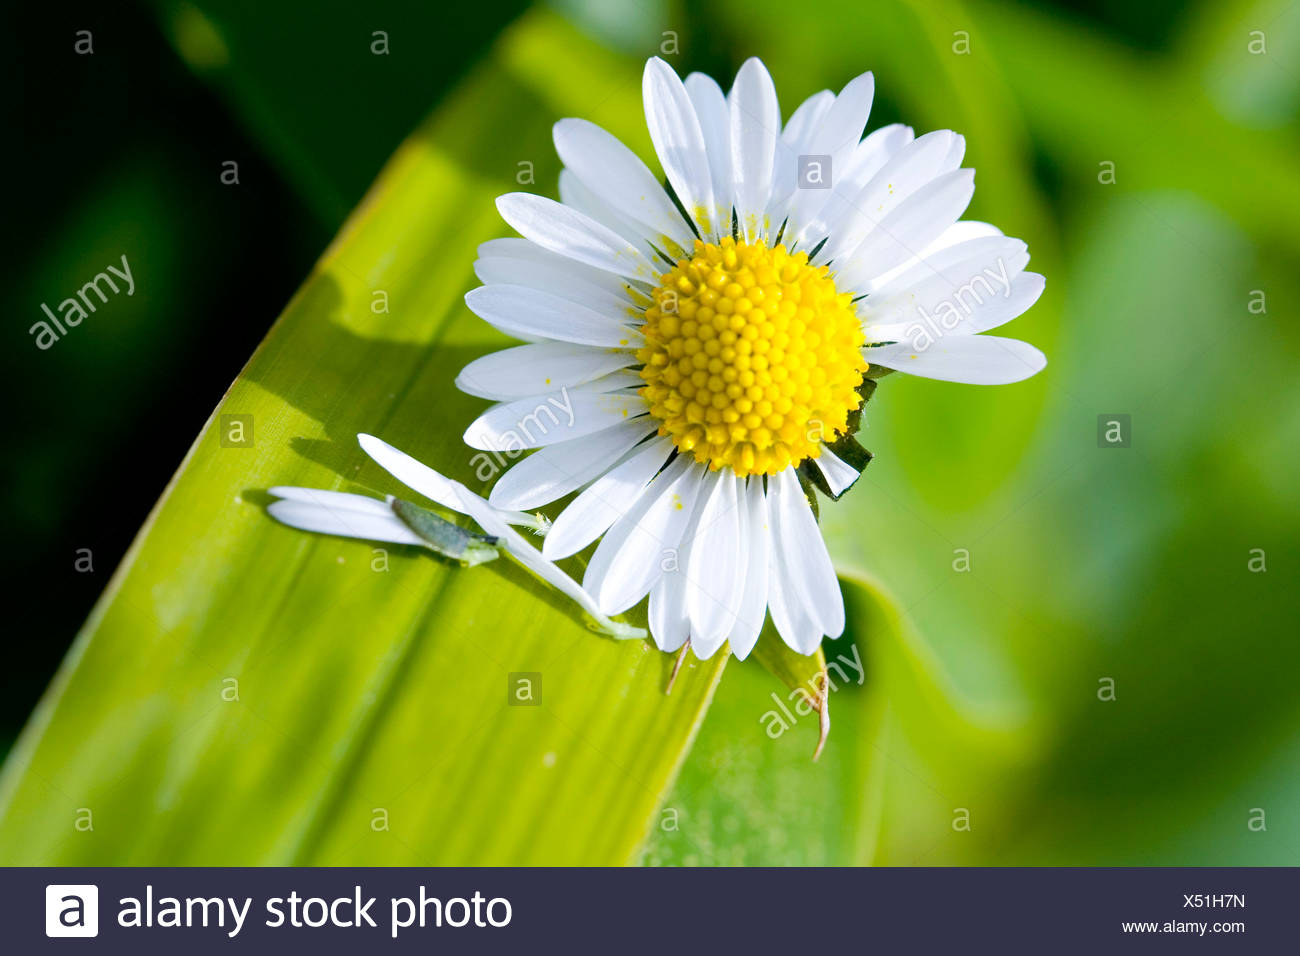 Close-up of white daisy (Bellis perennis) - Stock Image